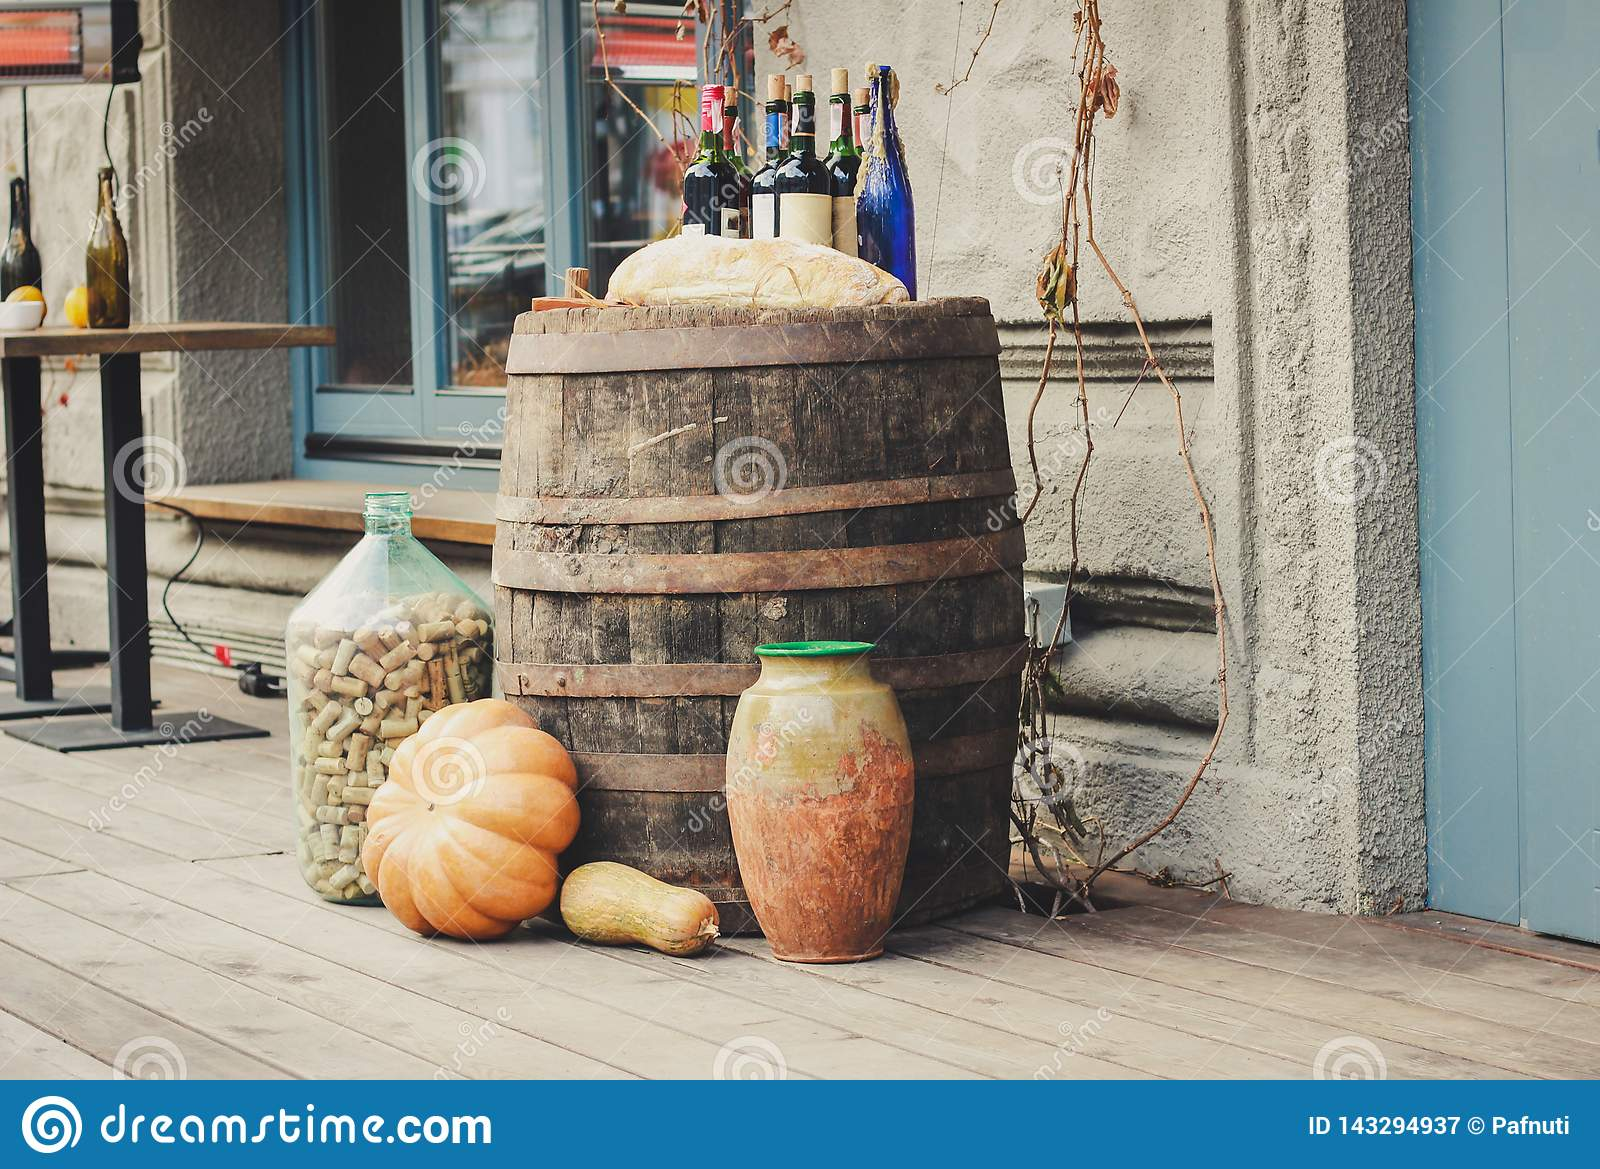 Old wooden barrels on which there are pumpkins and bottles.